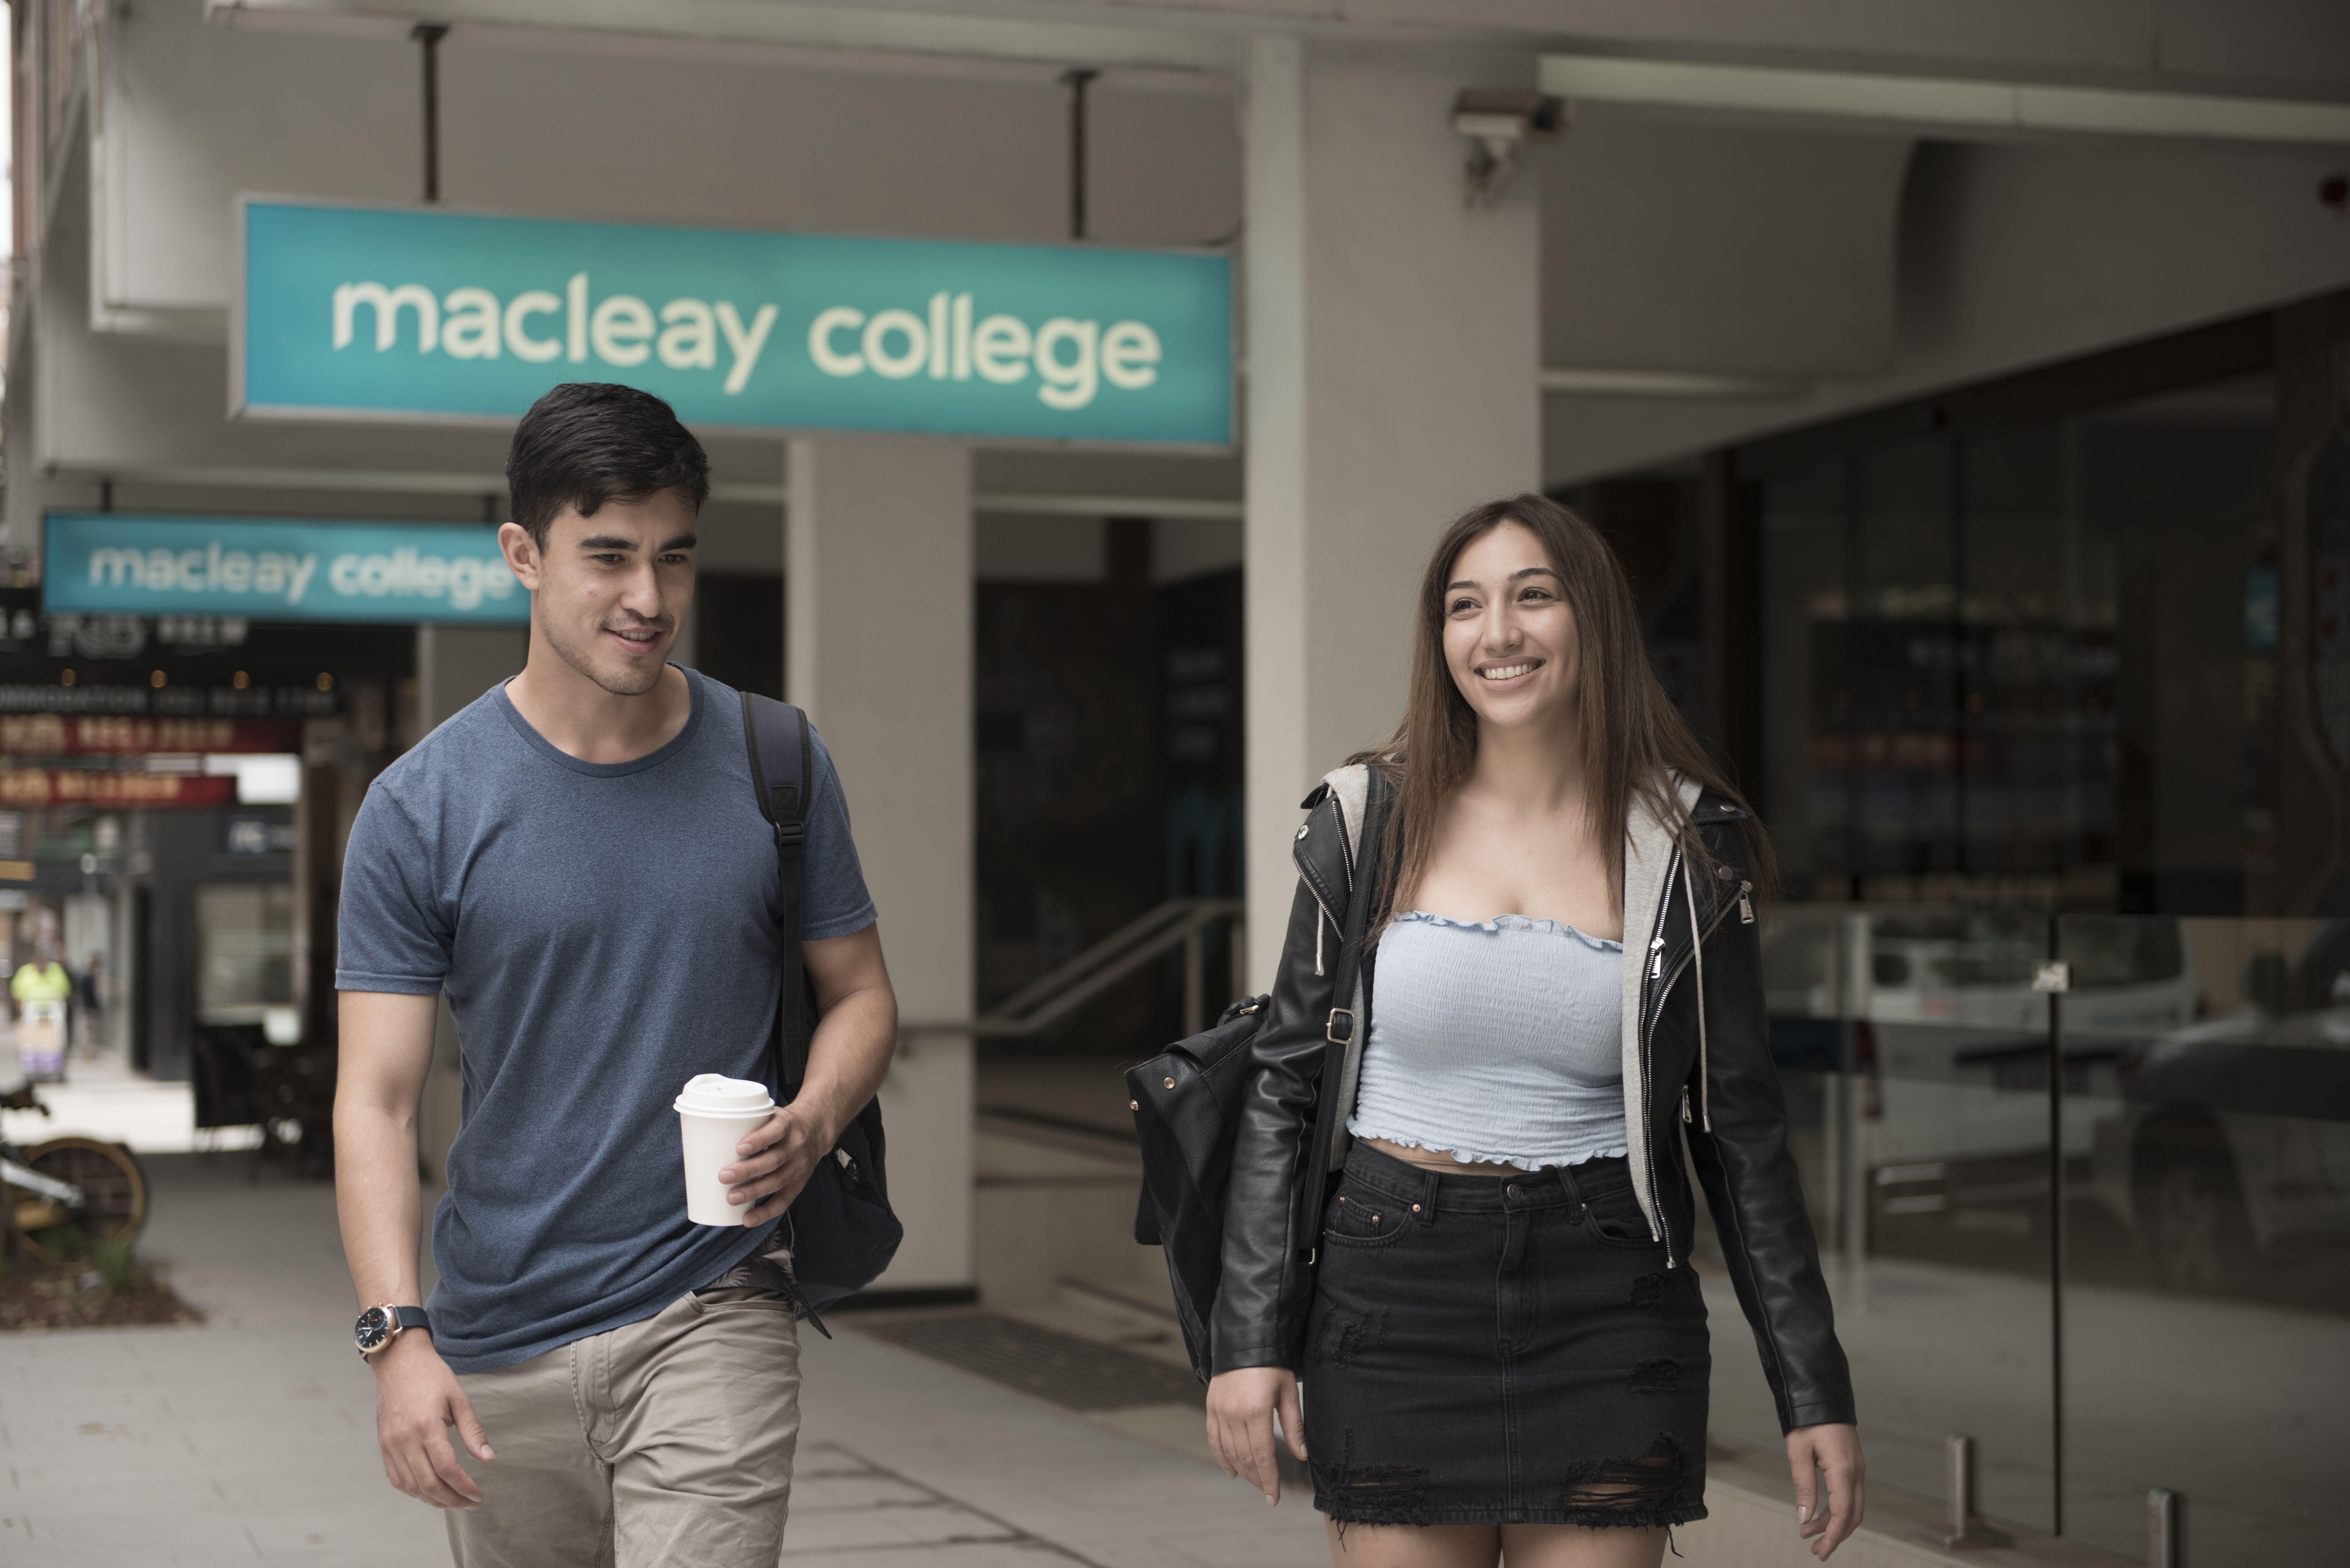 Once again Macleay College is a national leader in educational experience